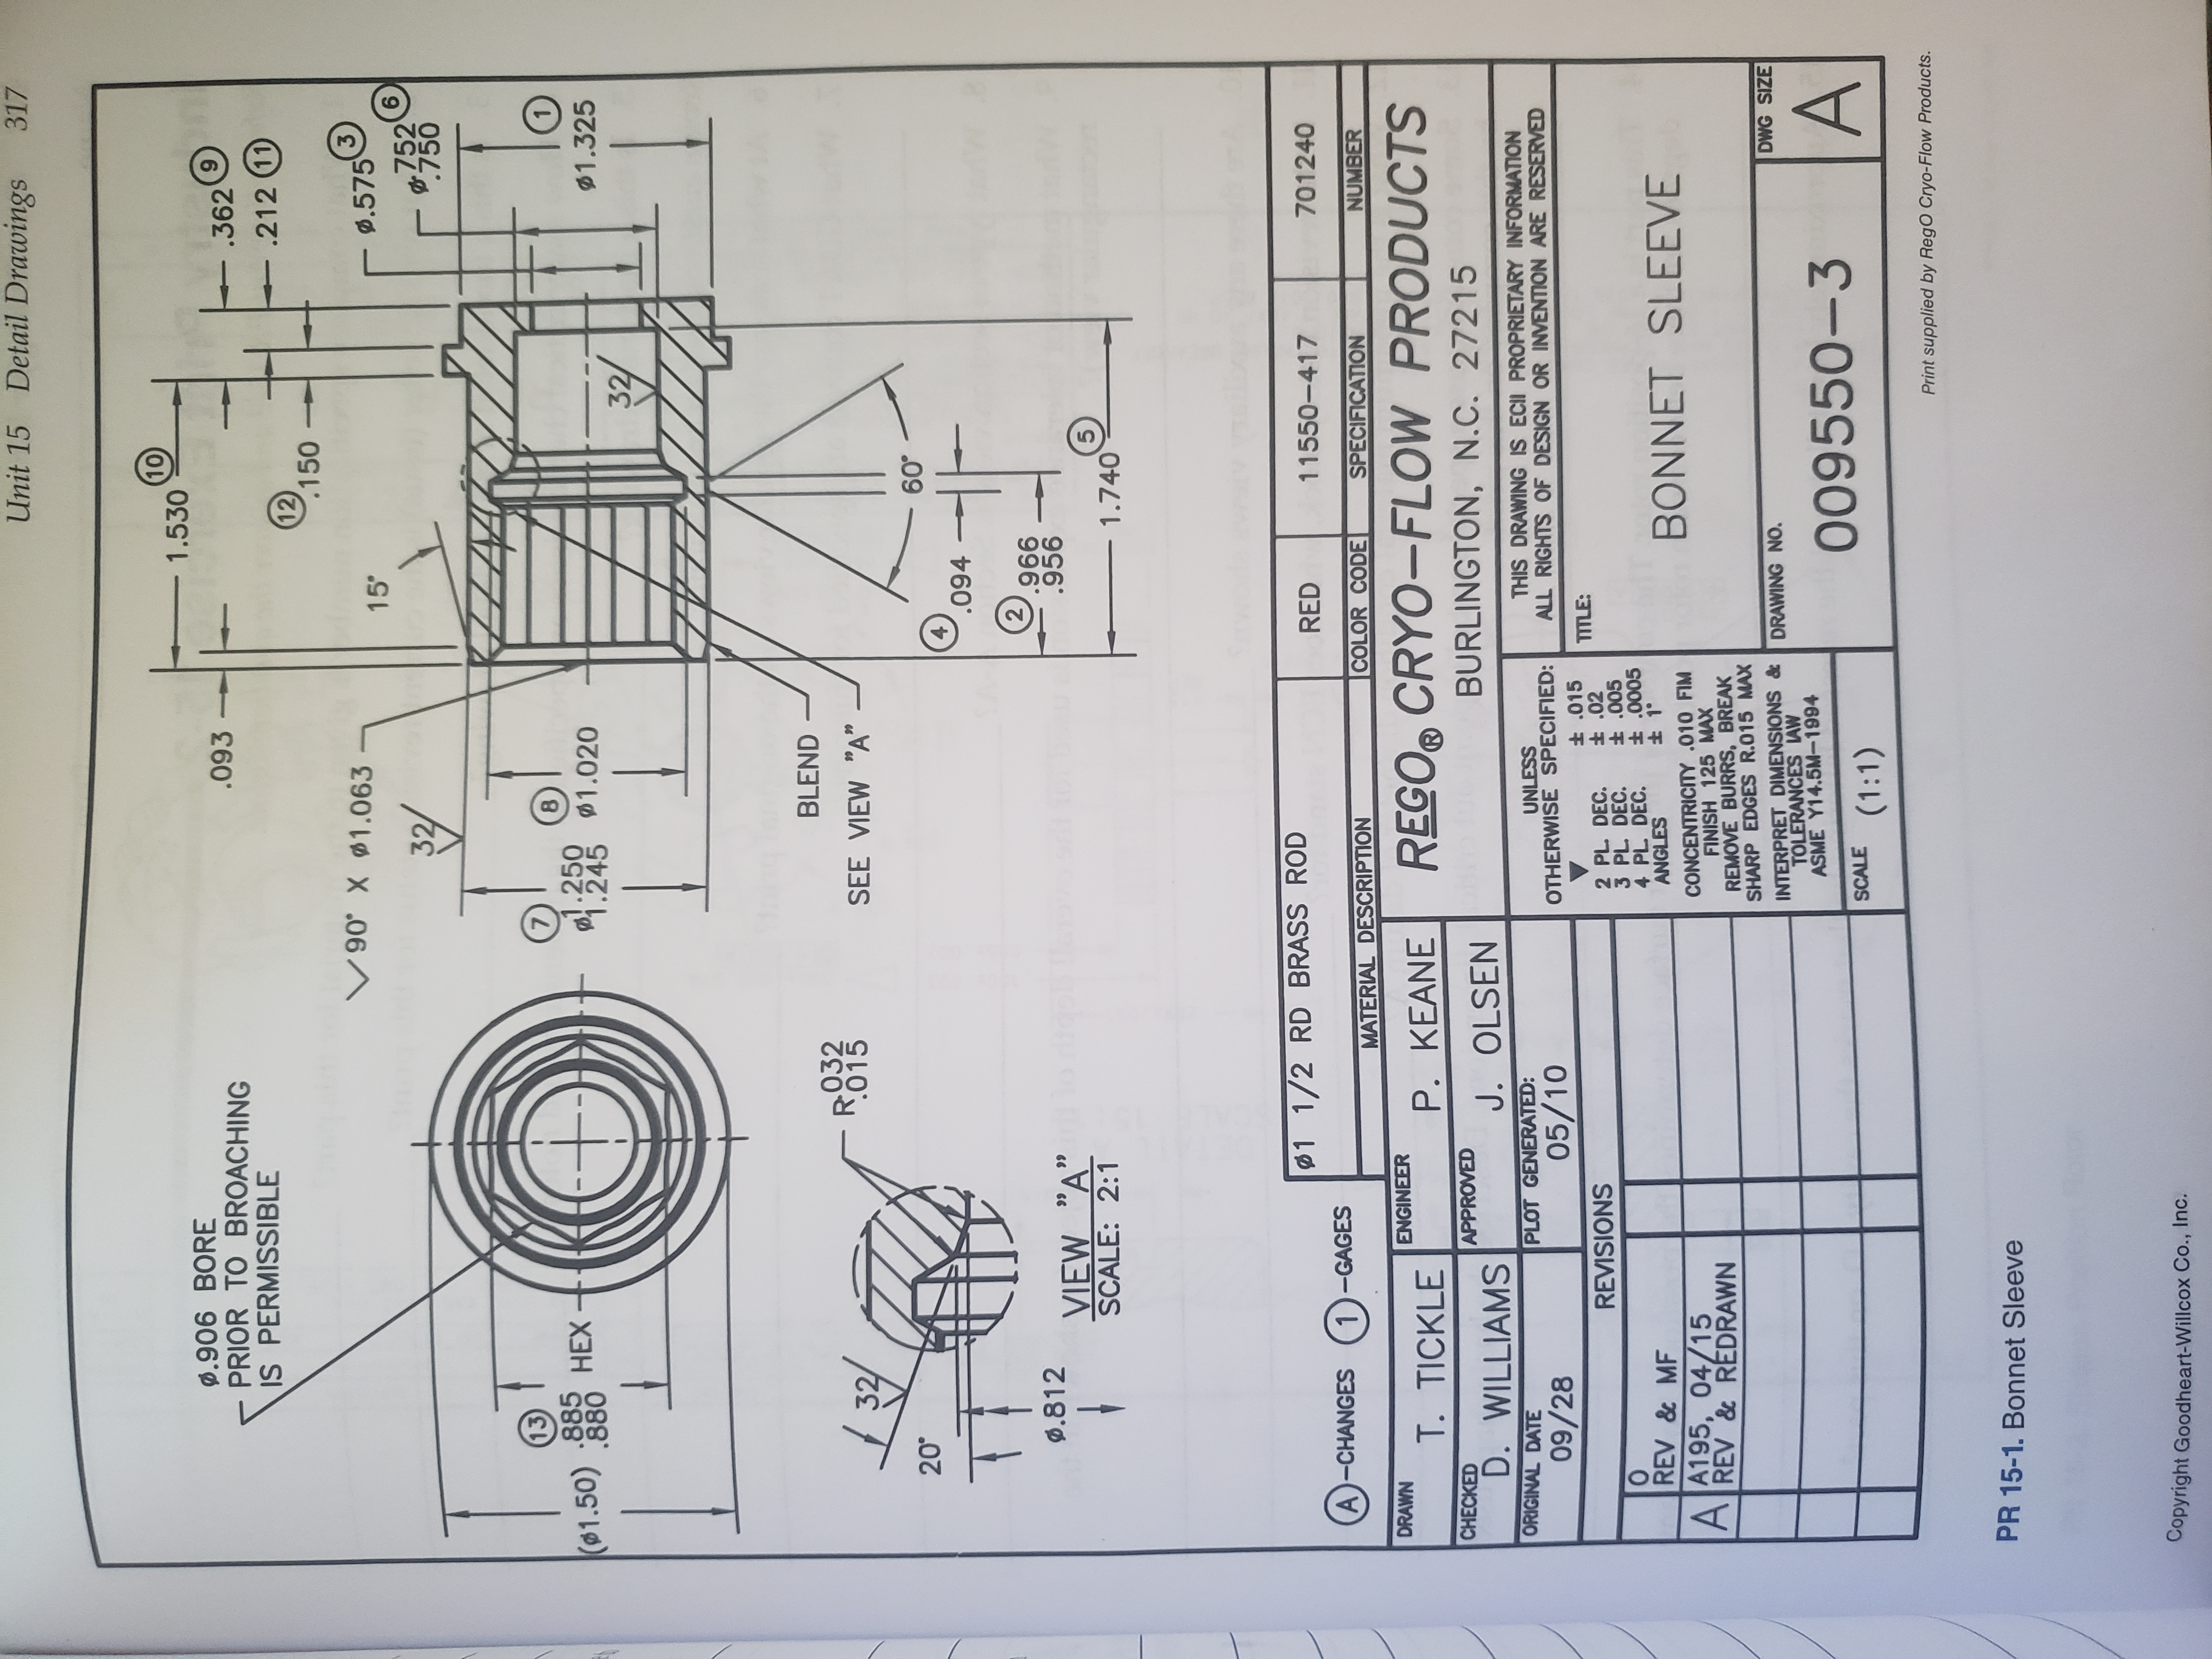 "Detail Drawings Unit 15 317 10 1.530 0.906 BORE PRIOR TO BROACHING IS PERMISSIBLE .093 .362 .212 (11 12 .150 90 X 1.063 3 .575 6 15' 32/ 752 .750 13) 7 8 .885 .880 1.250 1.245 НЕХ (01.50) 1.020 $1.325 32/ BLEND 032 015 SEE VIEW ""A"" 20° 60° 4 .094 2 .966 .956 .812 dool Tla oooom VIEW ""A"" SCALE: 2:1 99 5 1.740 1 1/2 RD BRASS ROD RED 11550-417 701240 A-CHANGES 1-GAGES COLOR CODE NUMBER MATERIAL DESCRIPTION SPECIFICATION DRAWN ENGINEER REGO® CRYO-FLOW PRODUCTS T. TICKLE P. KEANE CHECKED APPROVED BURLINGTON, N.C. 27215 D. WILLIAMS J. OLSEN ORIGINAL DATE PLOT GENERATED: THIS DRAWING IS ECII PROPRIETARY INFORMATION ALL RIGHTS OF DESIGN OR INVENTION ARE RESERVED UNLESS OTHERWISE SPECIFIED: 05/10 09/28 t 015 t 02 t .005 t .0005 t 1° TITLE: REVISIONS 2 PL. DEC. 3 PL DEC. 4 PL DEC. ANGLES REV & MF BONNET SLEEVE A195, 04/15 REV&REDRAWN A CONCENTRICITY .010 FIM FINISH 125 MAX REMOVE BURRS, BREAK SHARP EDGES R.015 MAX INTERPRET DIMENSIONS & TOLERANCES AW ASME Y14.5M-1994 DWG SIZE DRAWING NO A 009550-3 SCALE (1:1) Print supplied by RegO Cryo-Flow Products. PR 15-1. Bonnet Sleeve Copyright Goodheart-Willcox Co., Inc."